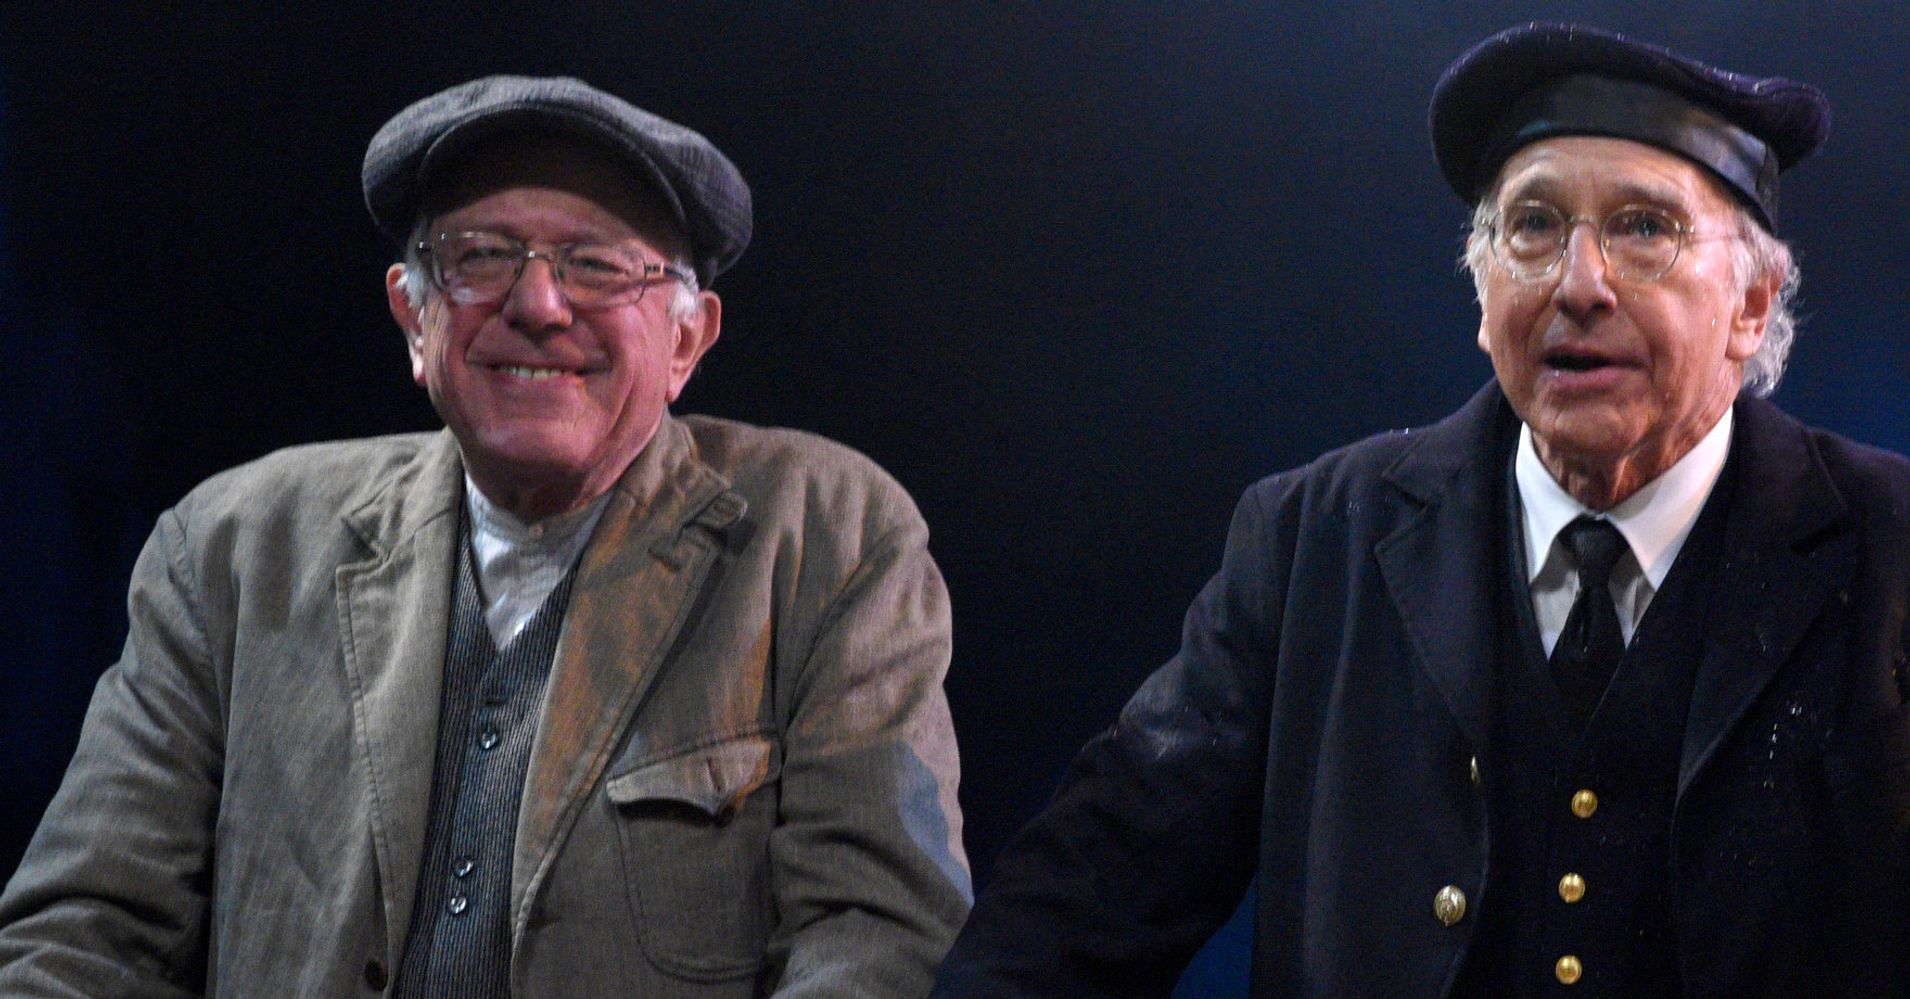 Larry David Just Found Out He's Related To Bernie Sanders